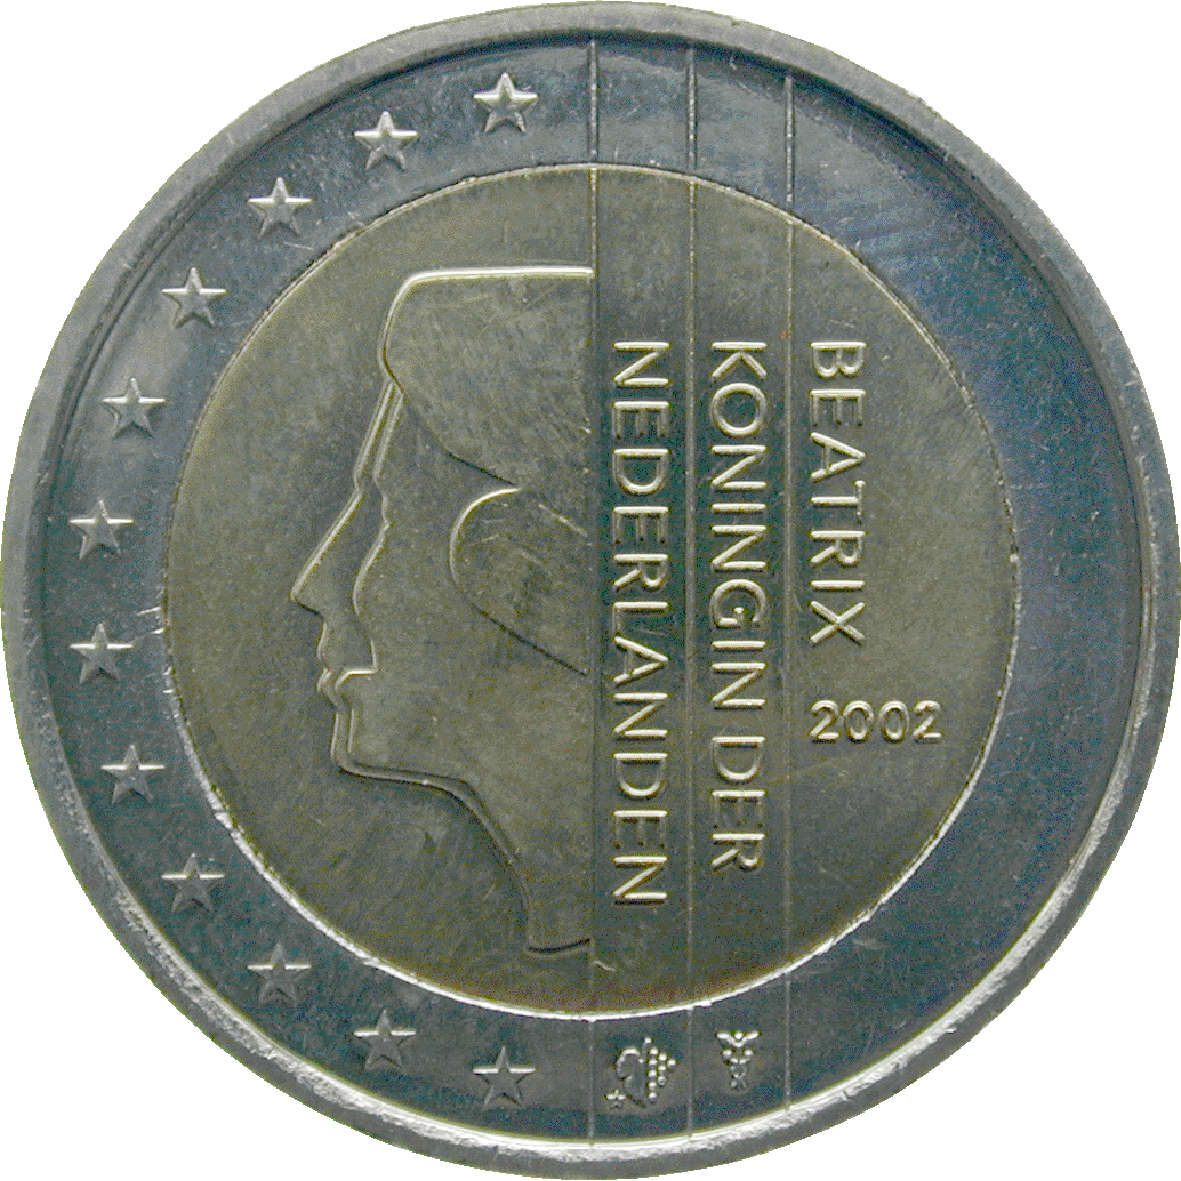 Kingdom of the Netherlands, Beatrix, 2 Euro 2002 (reverse)